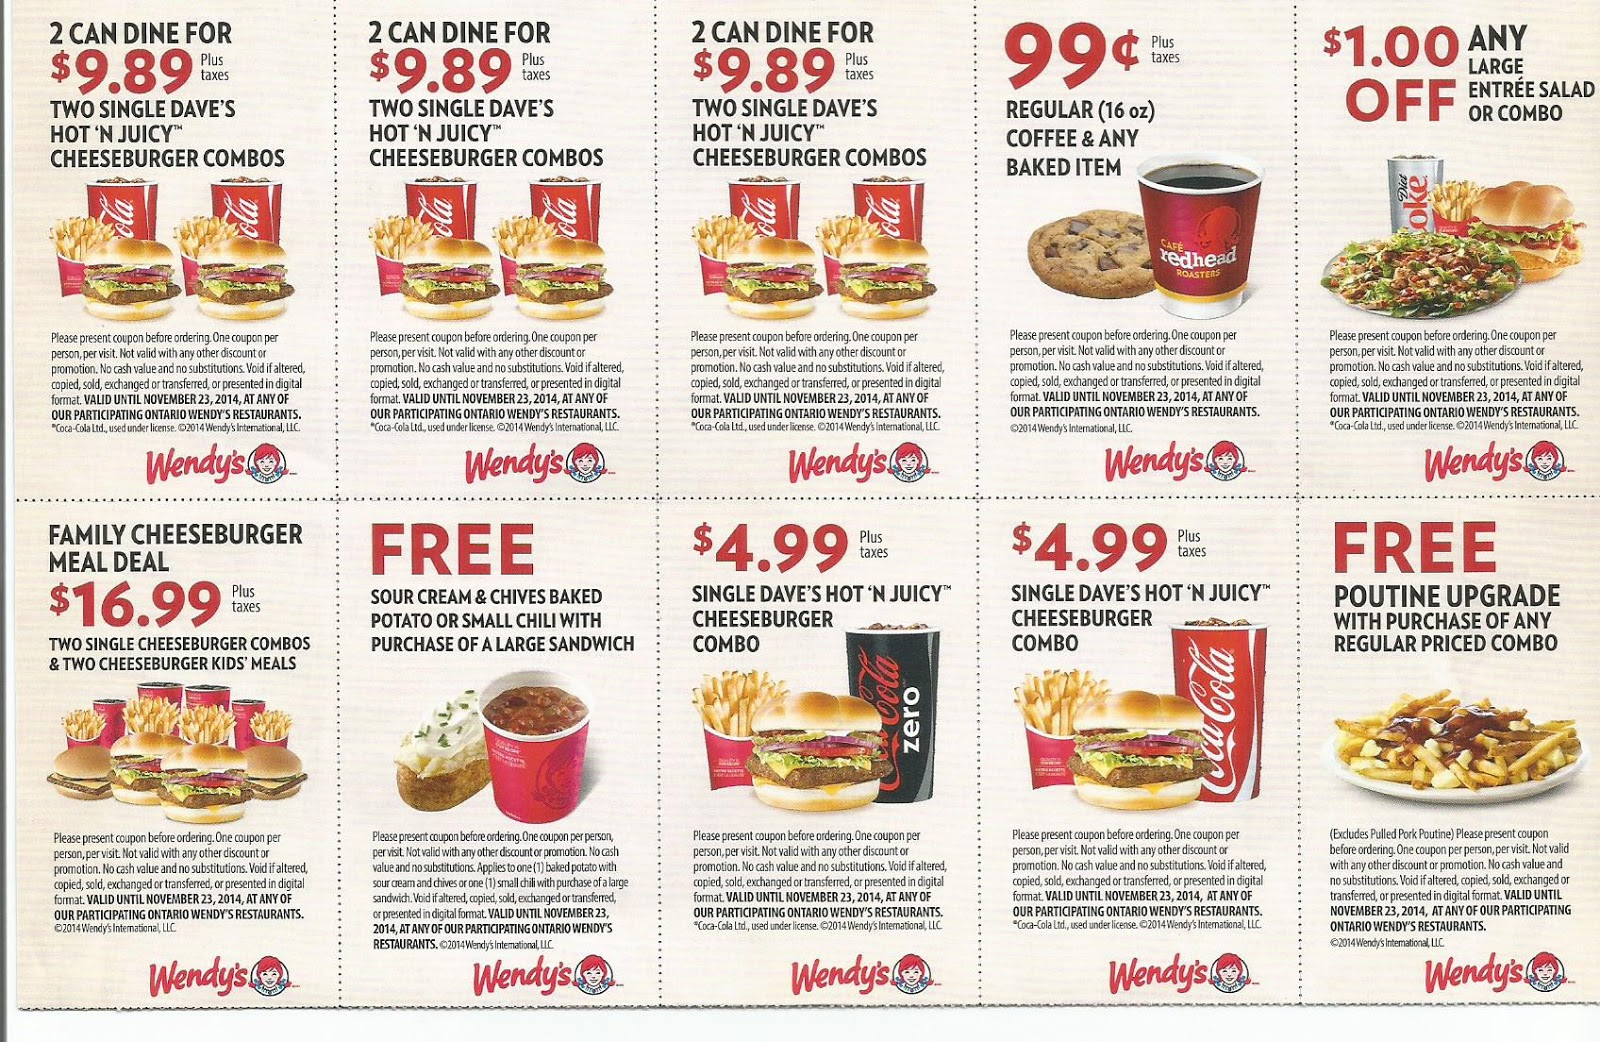 Promotional Voucer Sample Wendy Coupons Fast Food 2016 3